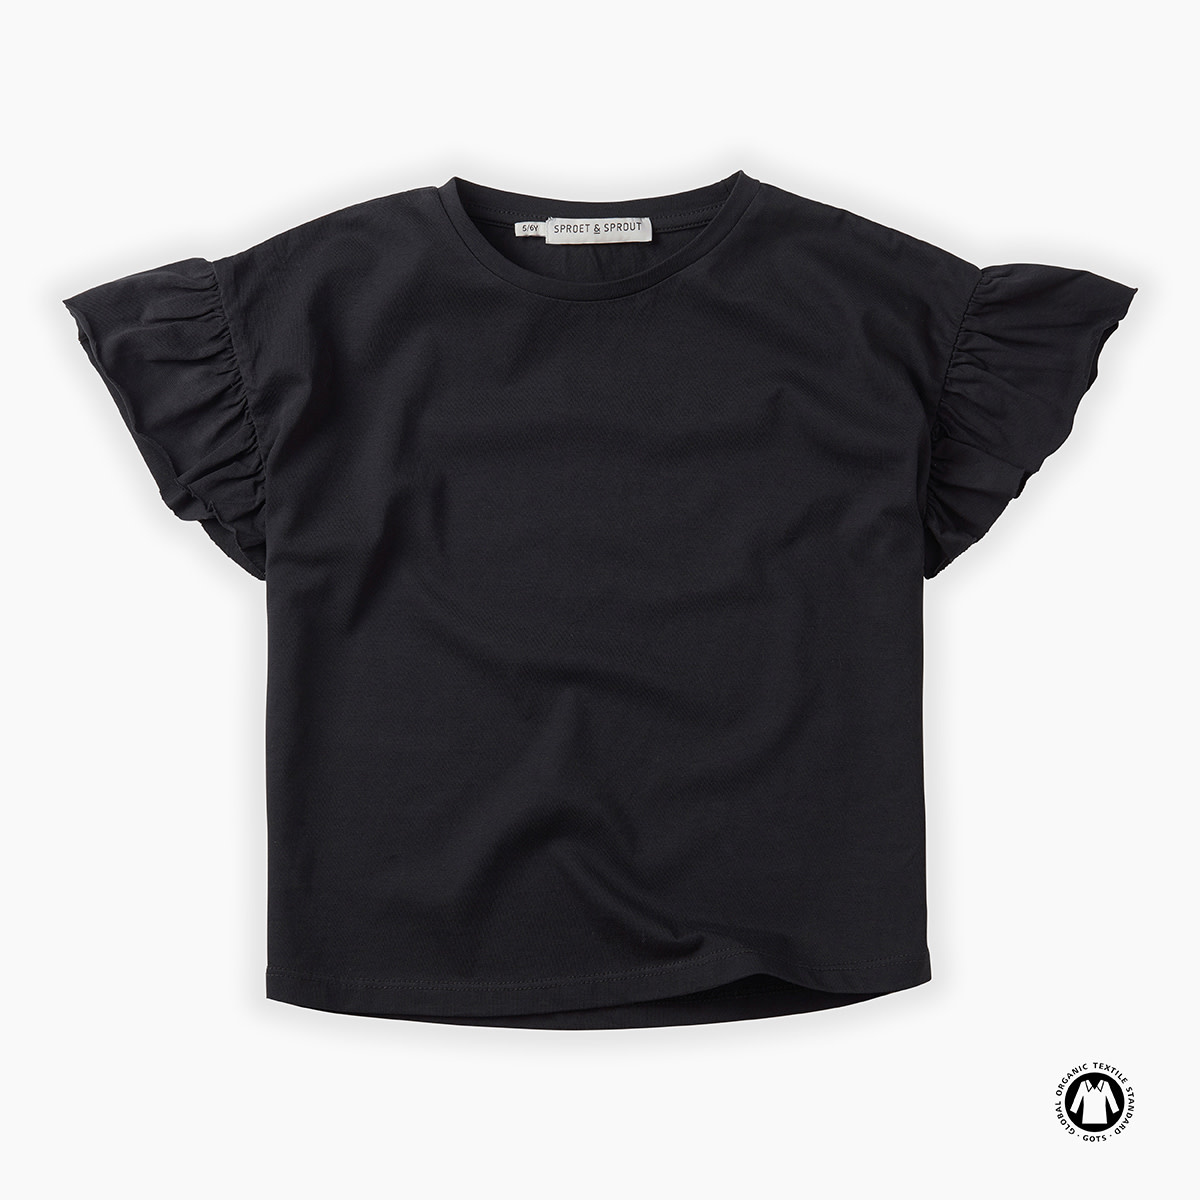 Sproet & Sprout Sproet & Sprout - T-shirt Grey Ruffle